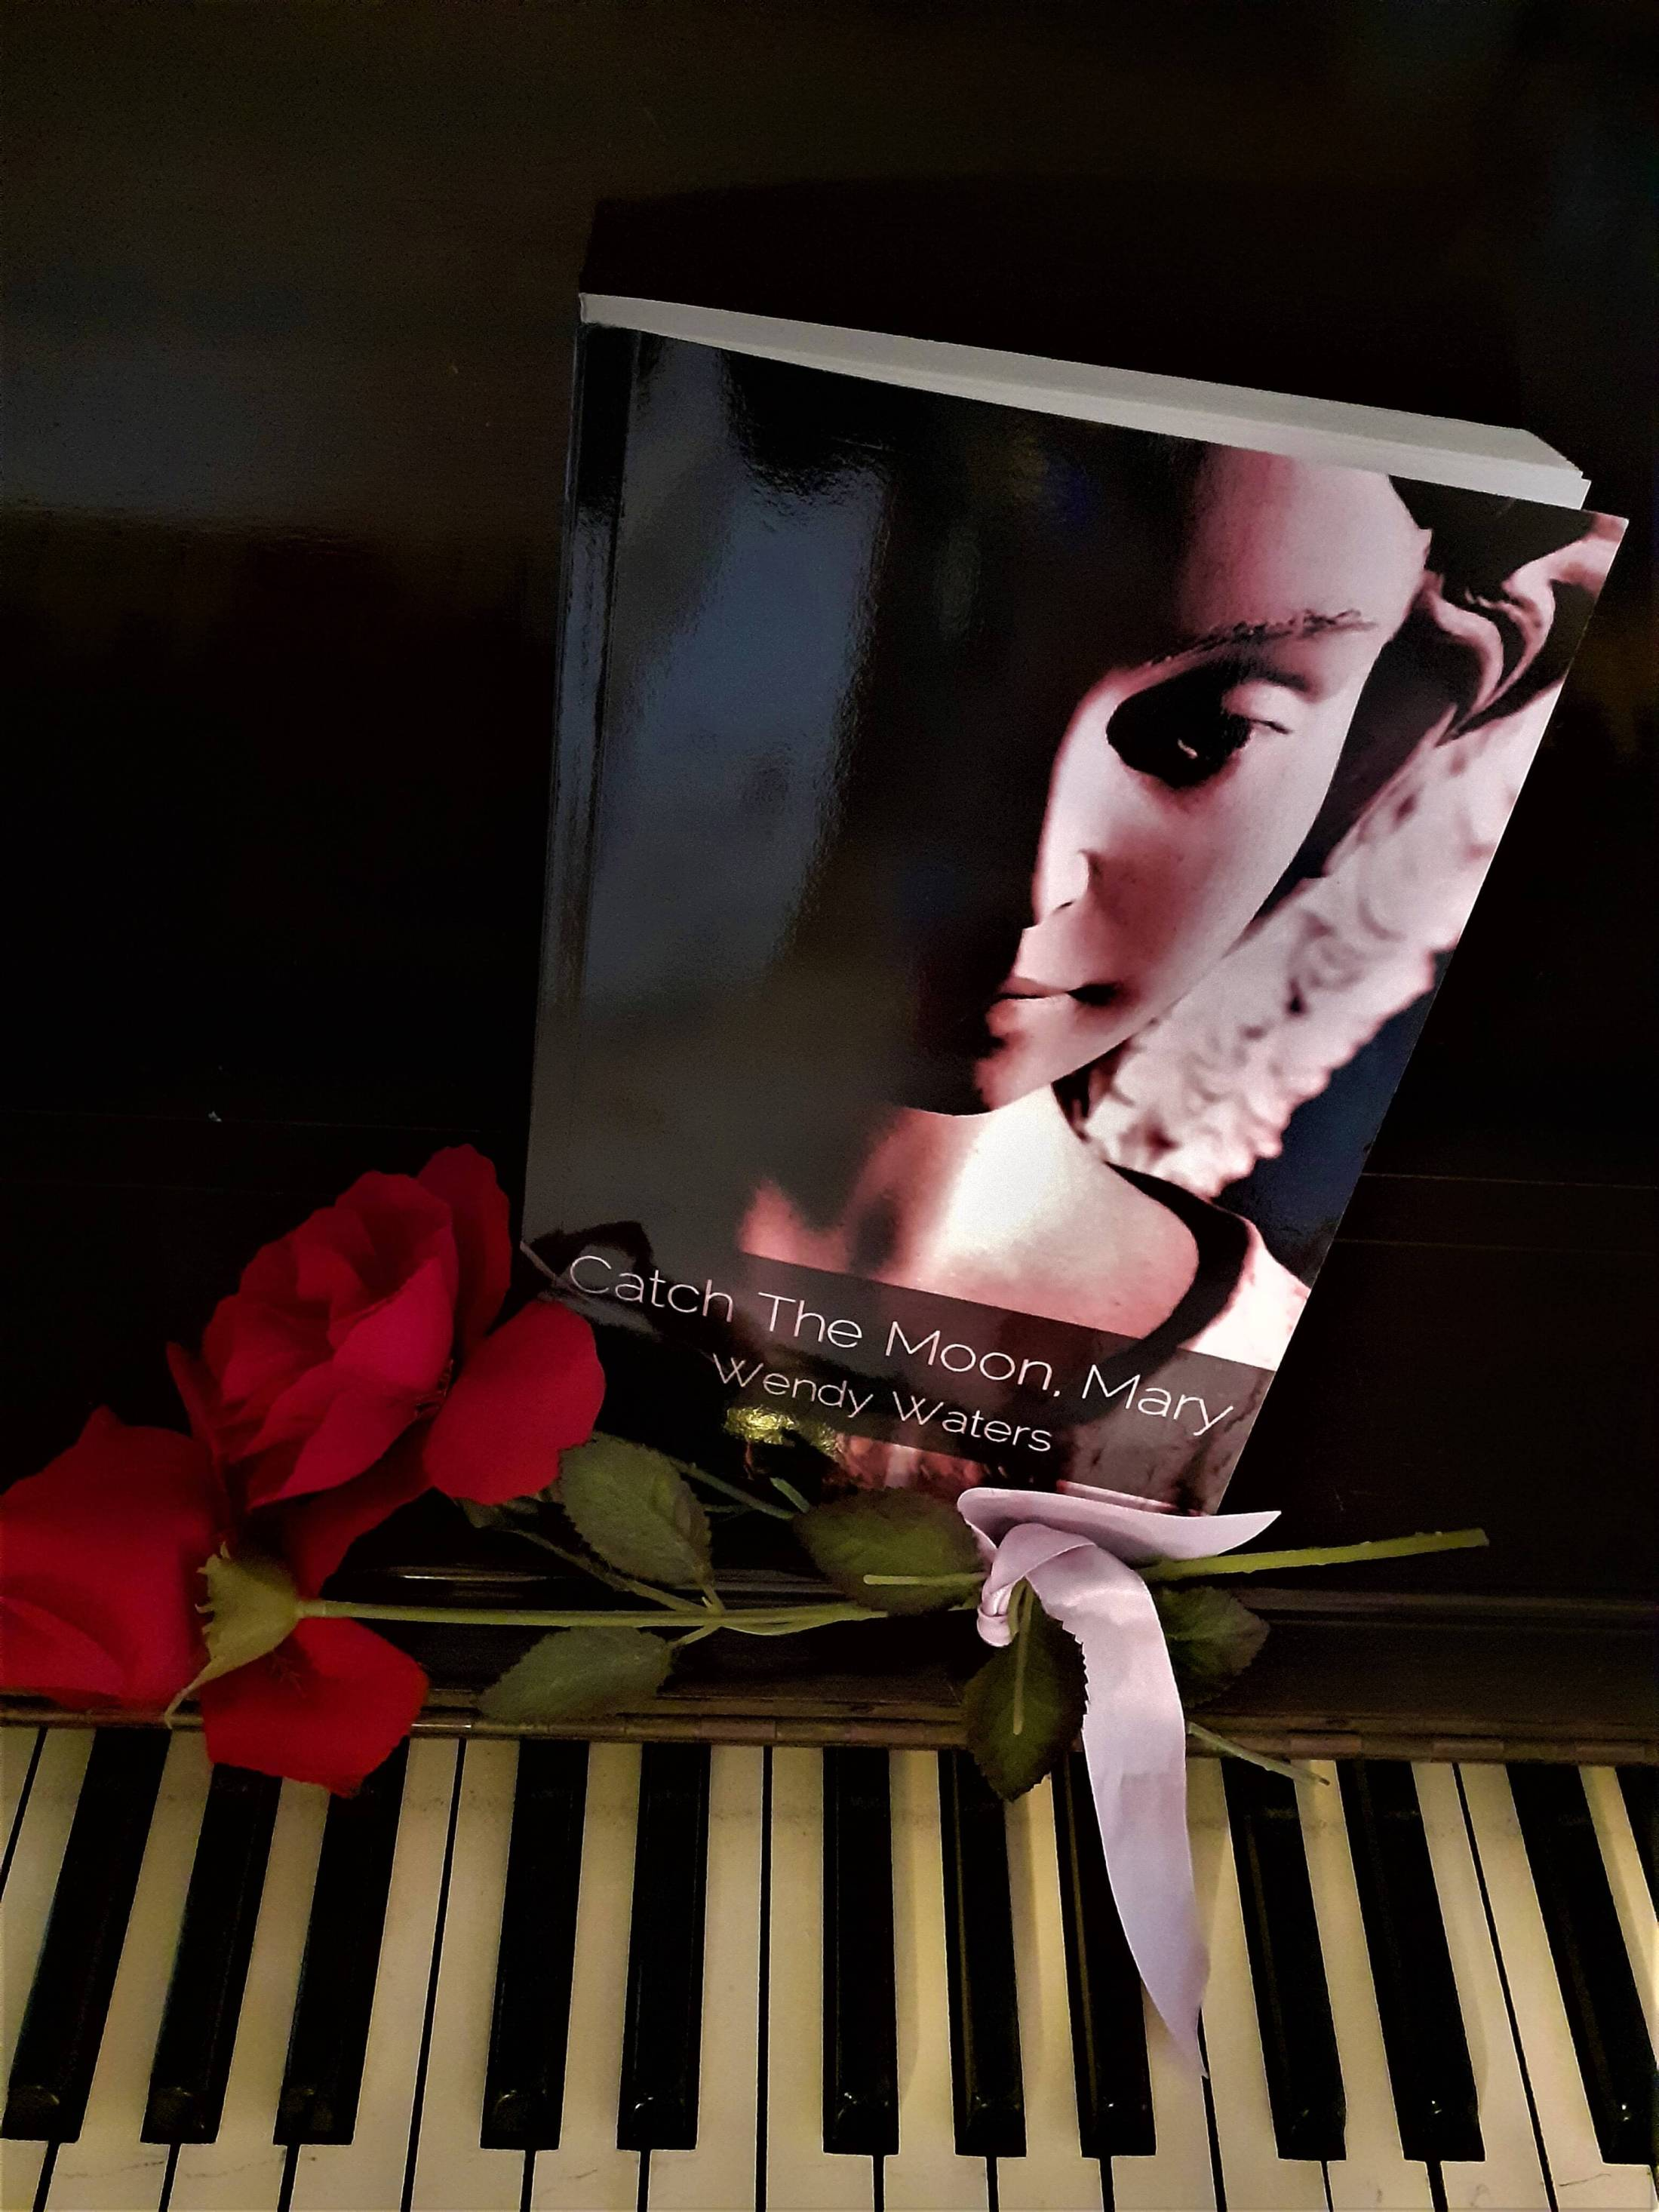 Catch the Moon Mary on a piano with roses